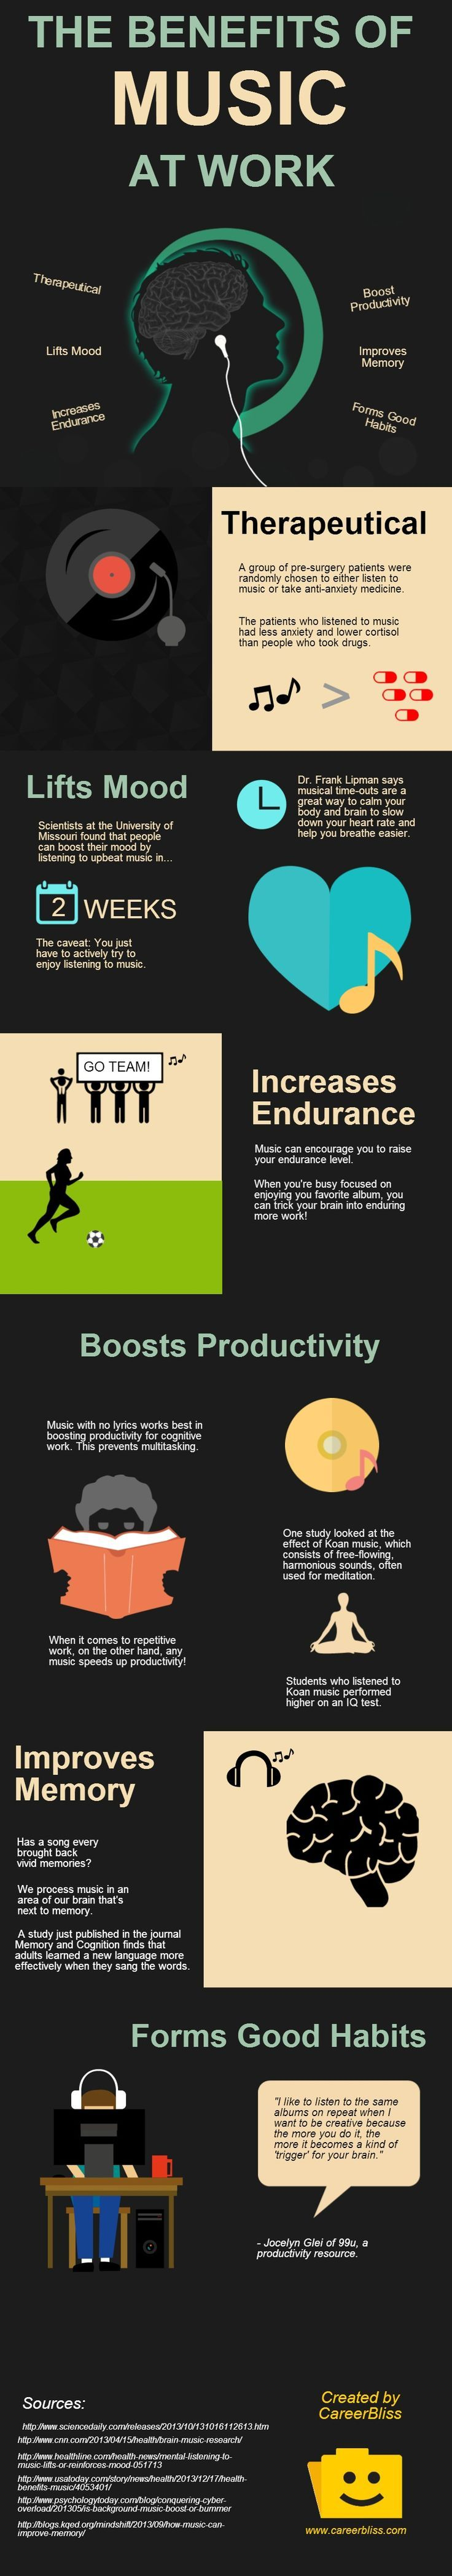 The Benefits of Listening to Music at Work [INFOGRAPHIC] | CareerBliss